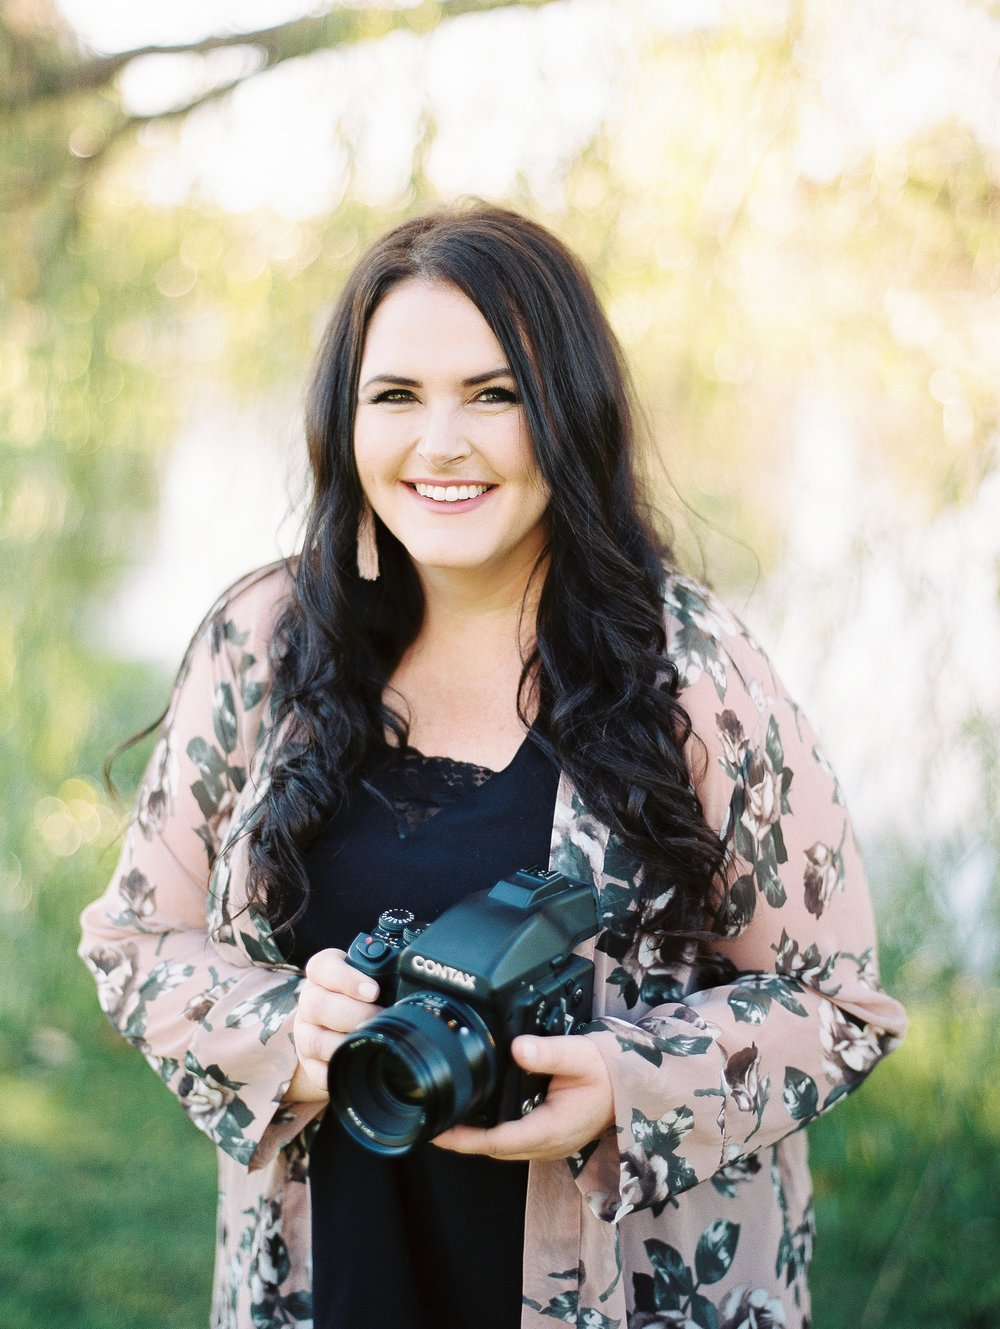 Hi, I'm Erin! - Travel Enthusiast – Home Decor and Design Obsessed - WanderlustHi! I'm Erin, from Erin Wilson Photography which is a photography and cinematography business I started in 2014. Most of the time you can find me traveling, exploring, photographing and editing gorgeous photos, painting, throwing parties and making excellent charcuterie boards and maybe watching a little HGTV to get inspired during our renovation of our 1970's fixer-upper.  I'm most known for dreamy romantic  wedding photography. I love serving others by encouraging their creative sides, reminding them how beautiful they are and being as positive and calm in wild situations. I am extremely passionate about people, art and love. I photograph weddings on film and digital and very inspired by timeliness images that have a little artful vibe. Last year my husband Josh joined me in my business and we work together documenting our couples weddings in a romantic, dreamy and meaningful way. We love working as a team and work seamlessly together and I could not ask for a better partner.My husband Josh and I have two sweet children Penelope Lane (she has fire red hair and loves to sing and dance) and Emerson Gray (he has blonde hair, twinkly eyes and loves coloring and building anything with legos). We constantly try to do creative and adventurous things as a family. Sometimes we even put a tarp down in our living room and do full on painting nights as a family.